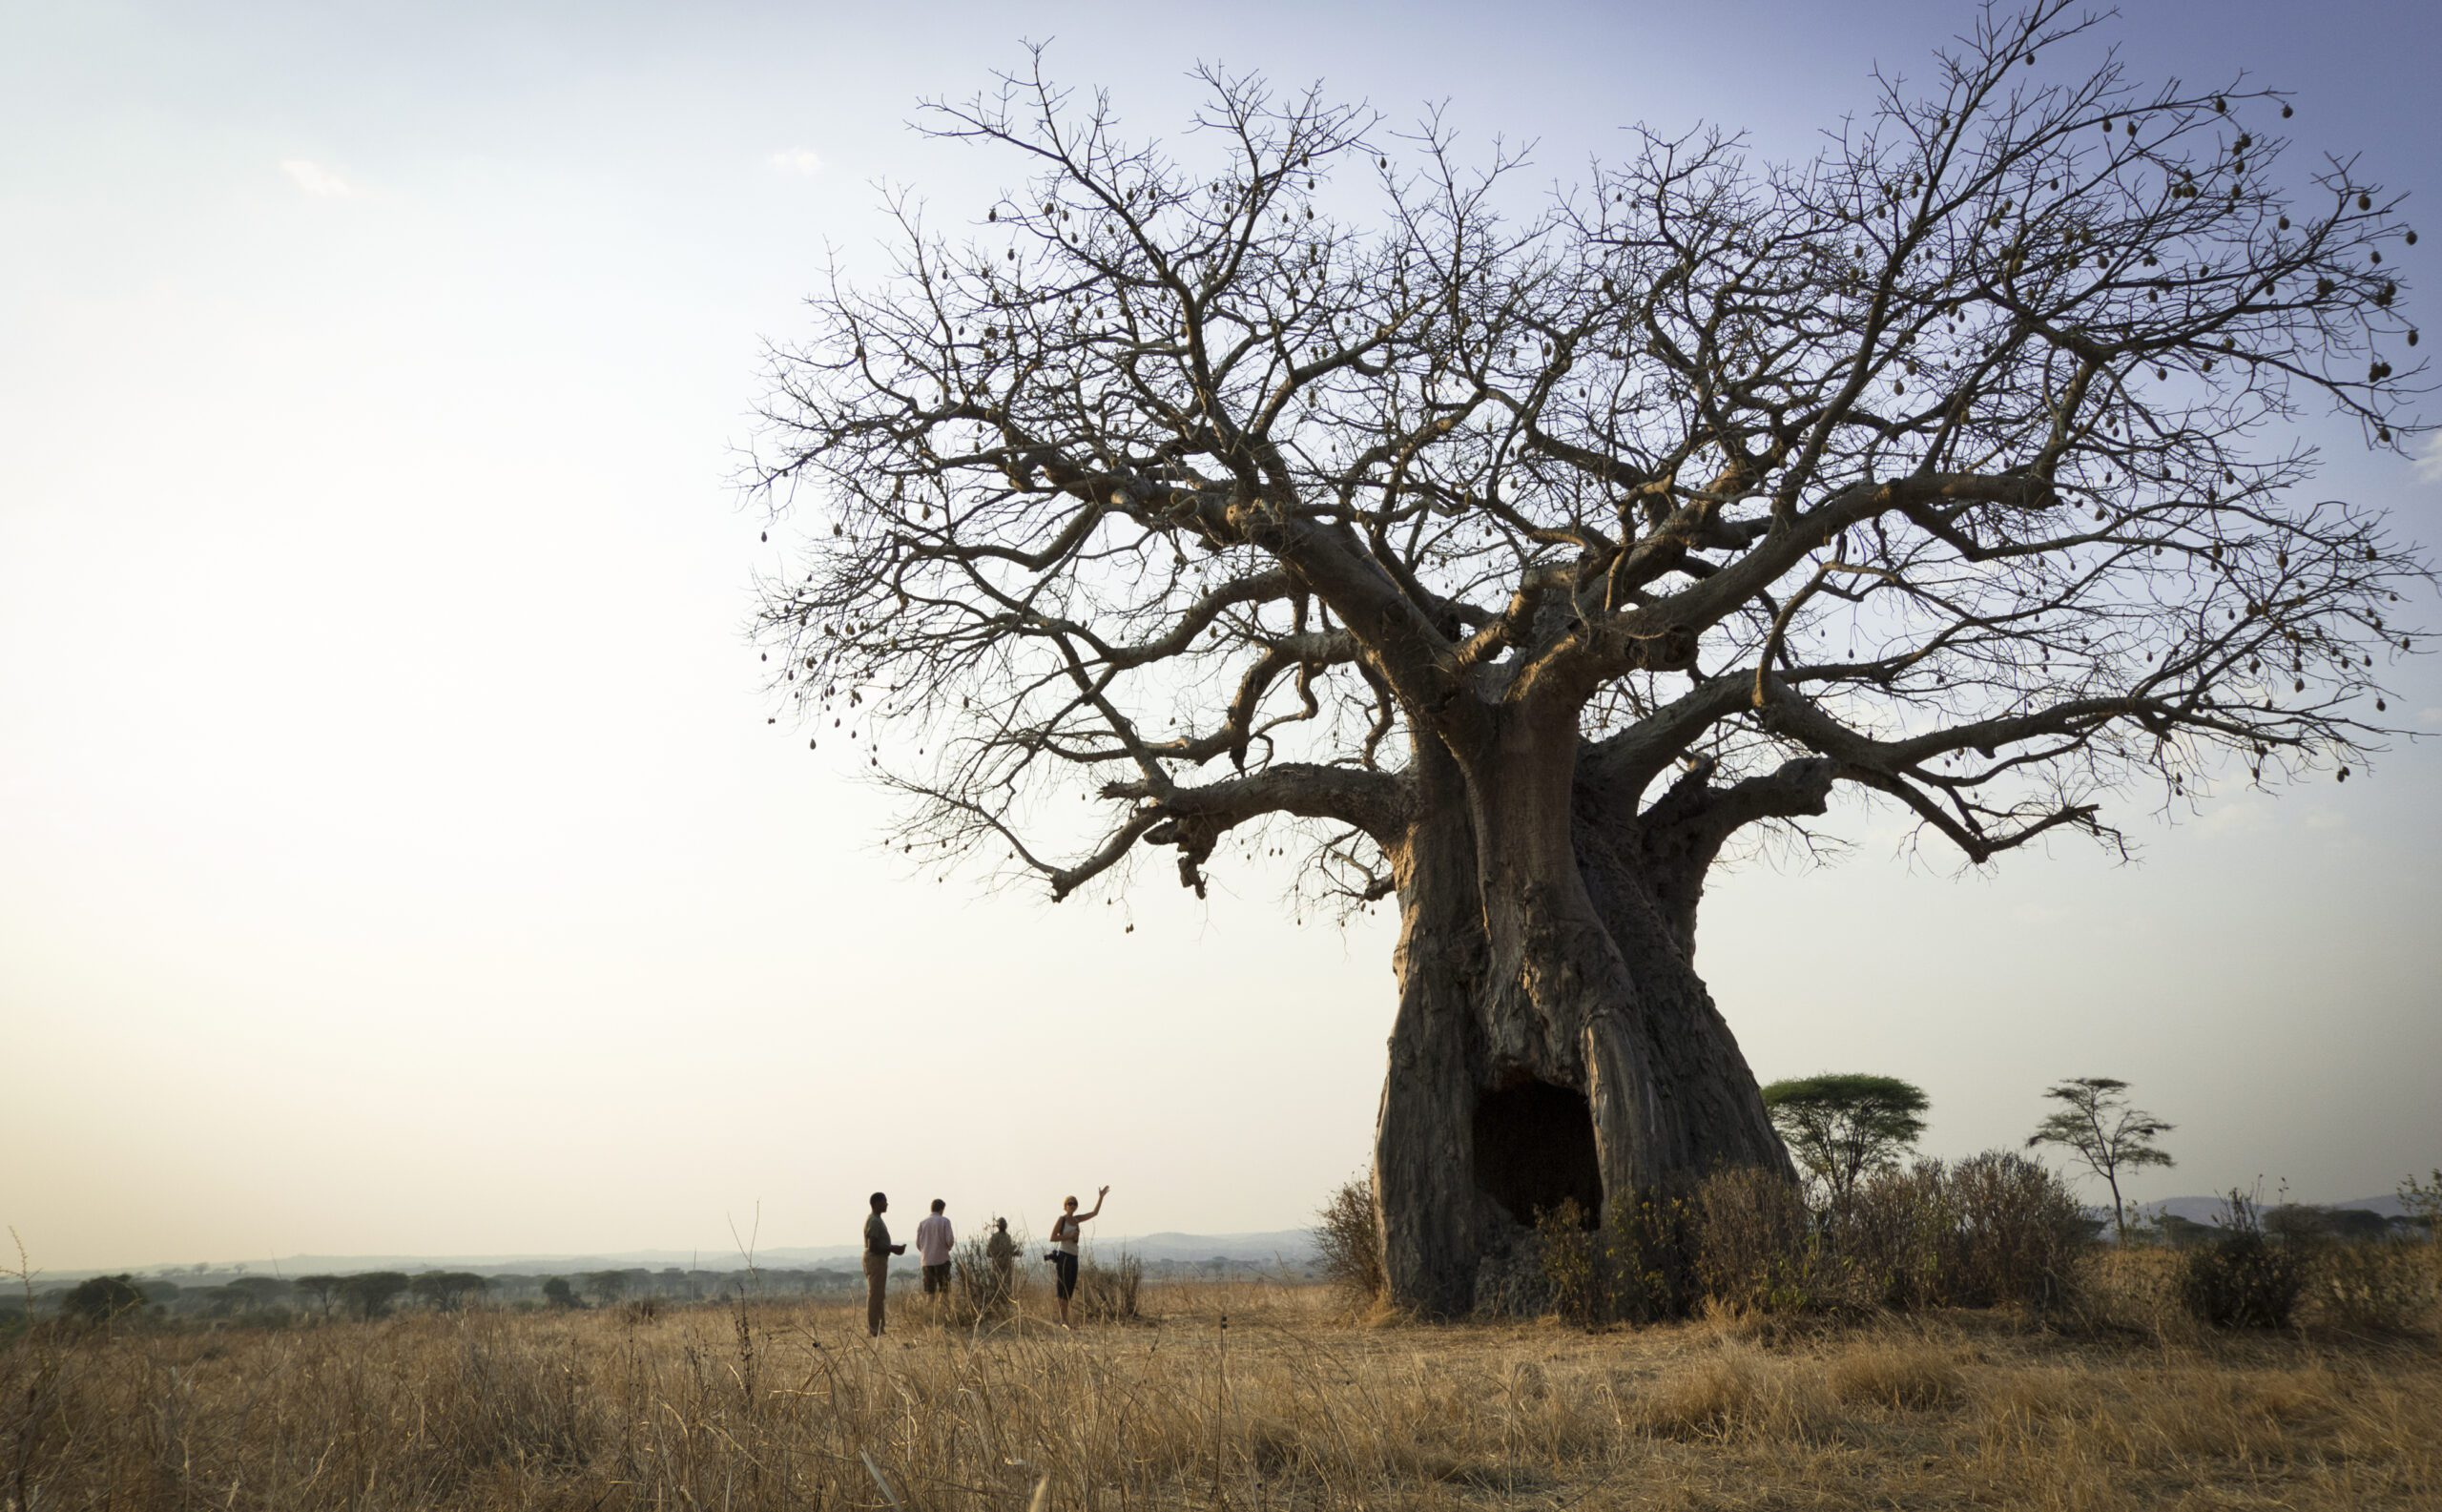 massive baobab tree at Kigelia Ruaha with a small group of people reveling at its size.